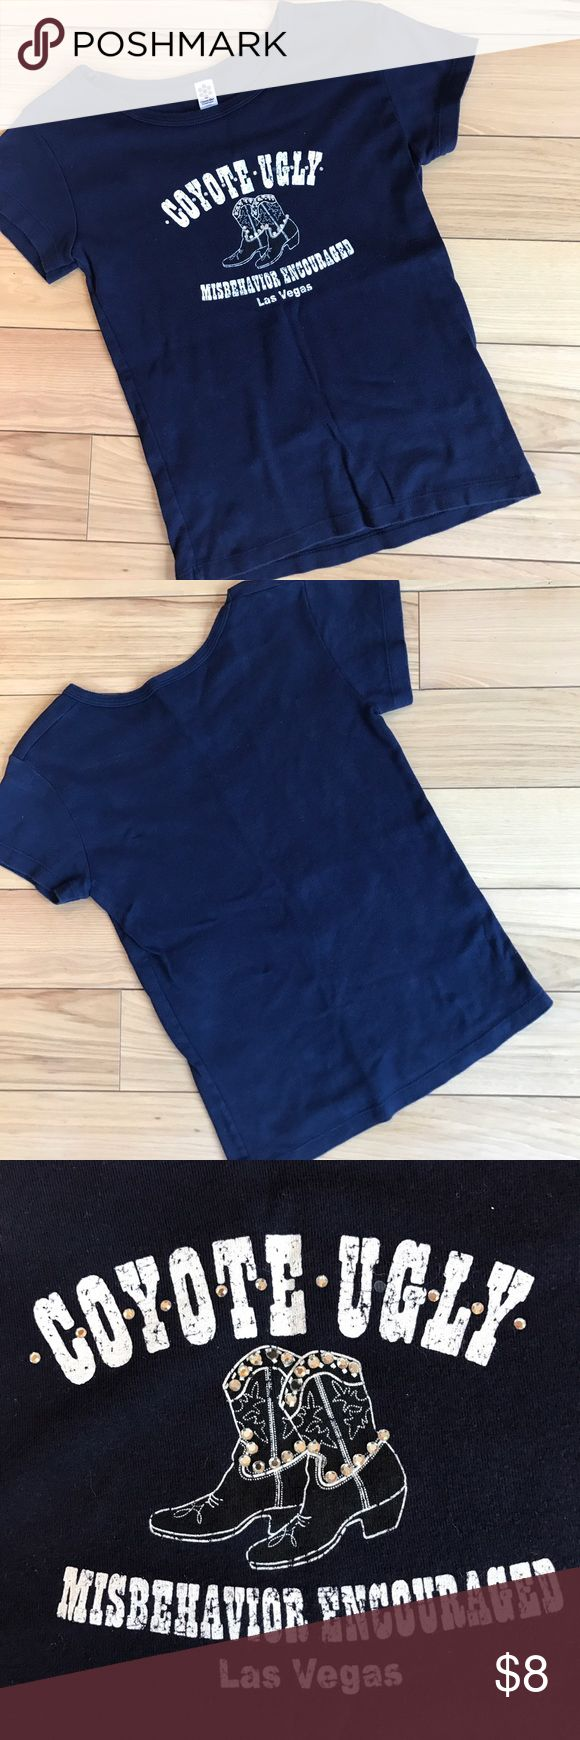 """Coyote Ugly Las Vegas Blue T-Shirt EUC Coyote Ugly Misbehaving Las Vegas T-Shirt. Blue with studded accents. Size Medium. Measurements taken while laying flat. Length 20"""" Bust 26"""" Waist 26"""" Tops Tees - Short Sleeve"""